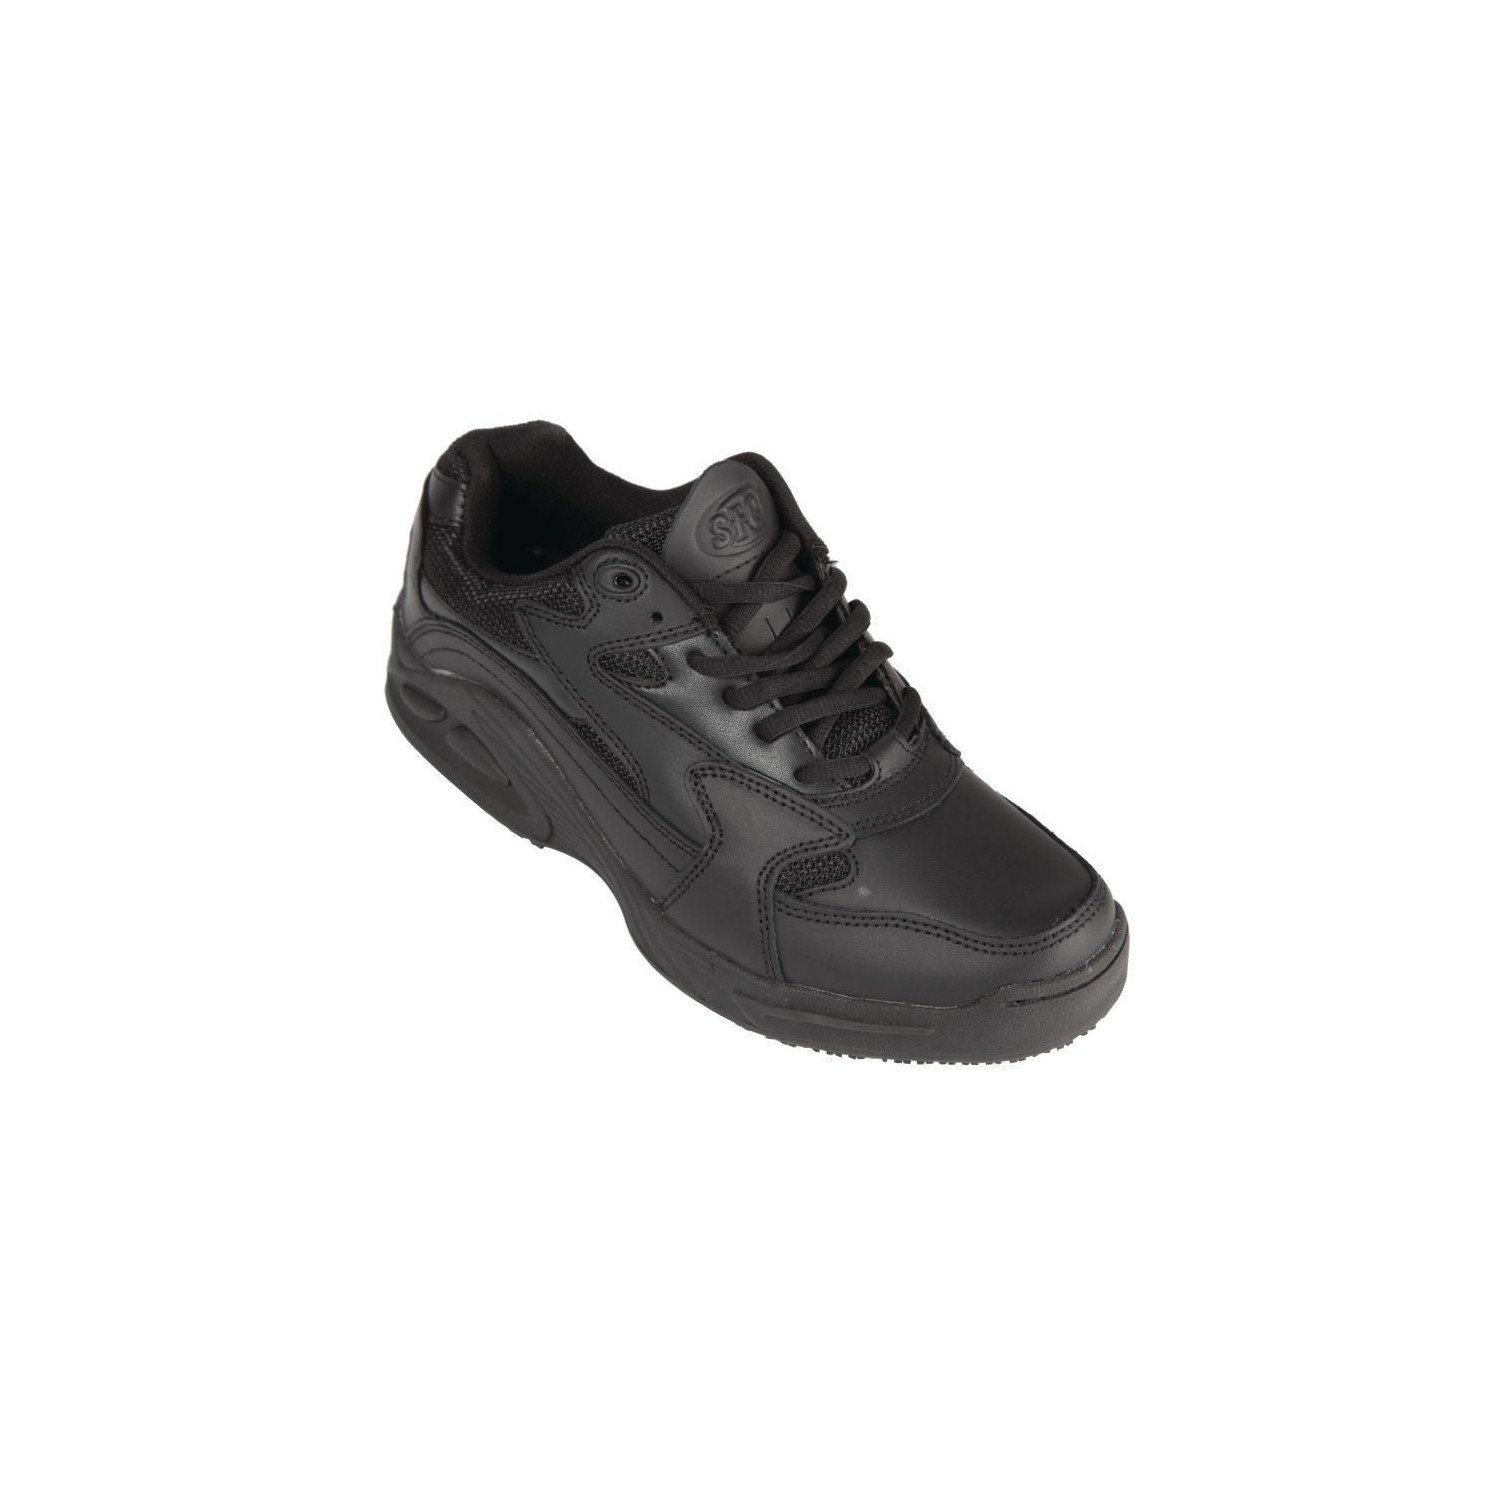 Shoes For Crews Ladies Stay Grounded Leather Trainer - Size 42 SHOES FOR CREWS Nisbets Vêtements